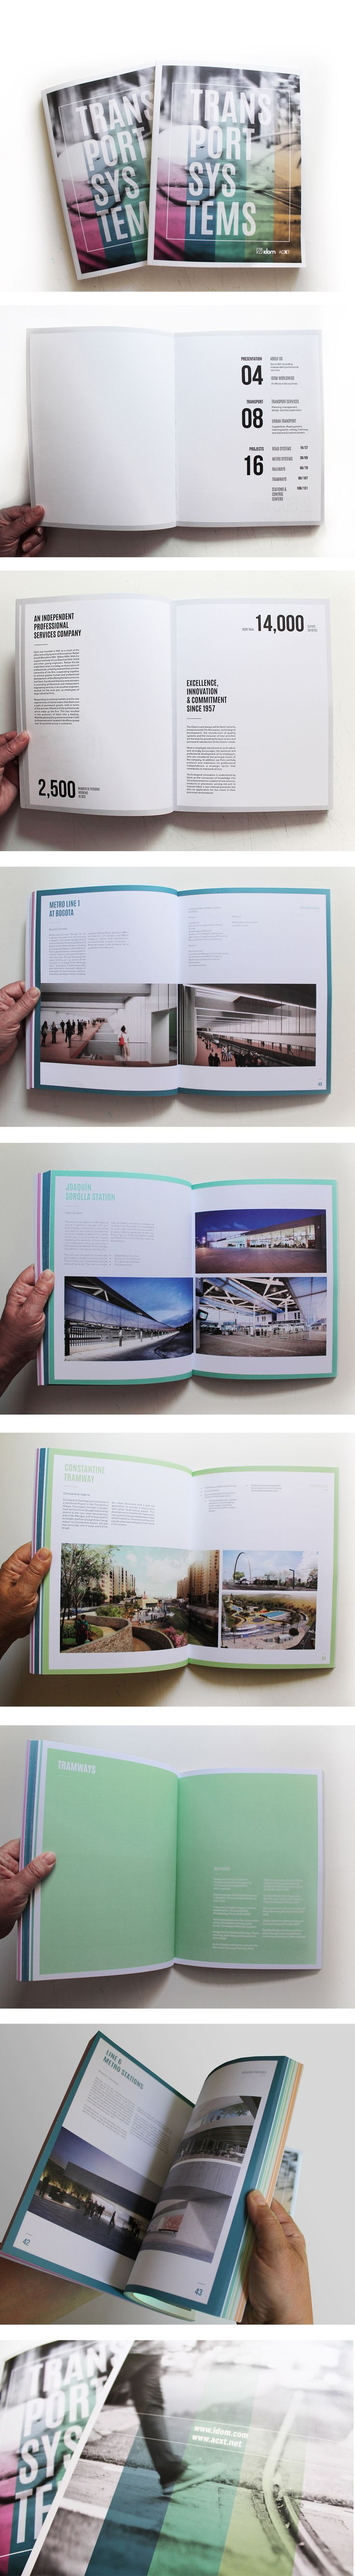 ARCHITECTURE  URBAN TRANSPORT SYSTEMS BOOK #editorial #design  http://www.muak.cc/?ds-gallery=urban-transport-systems-book